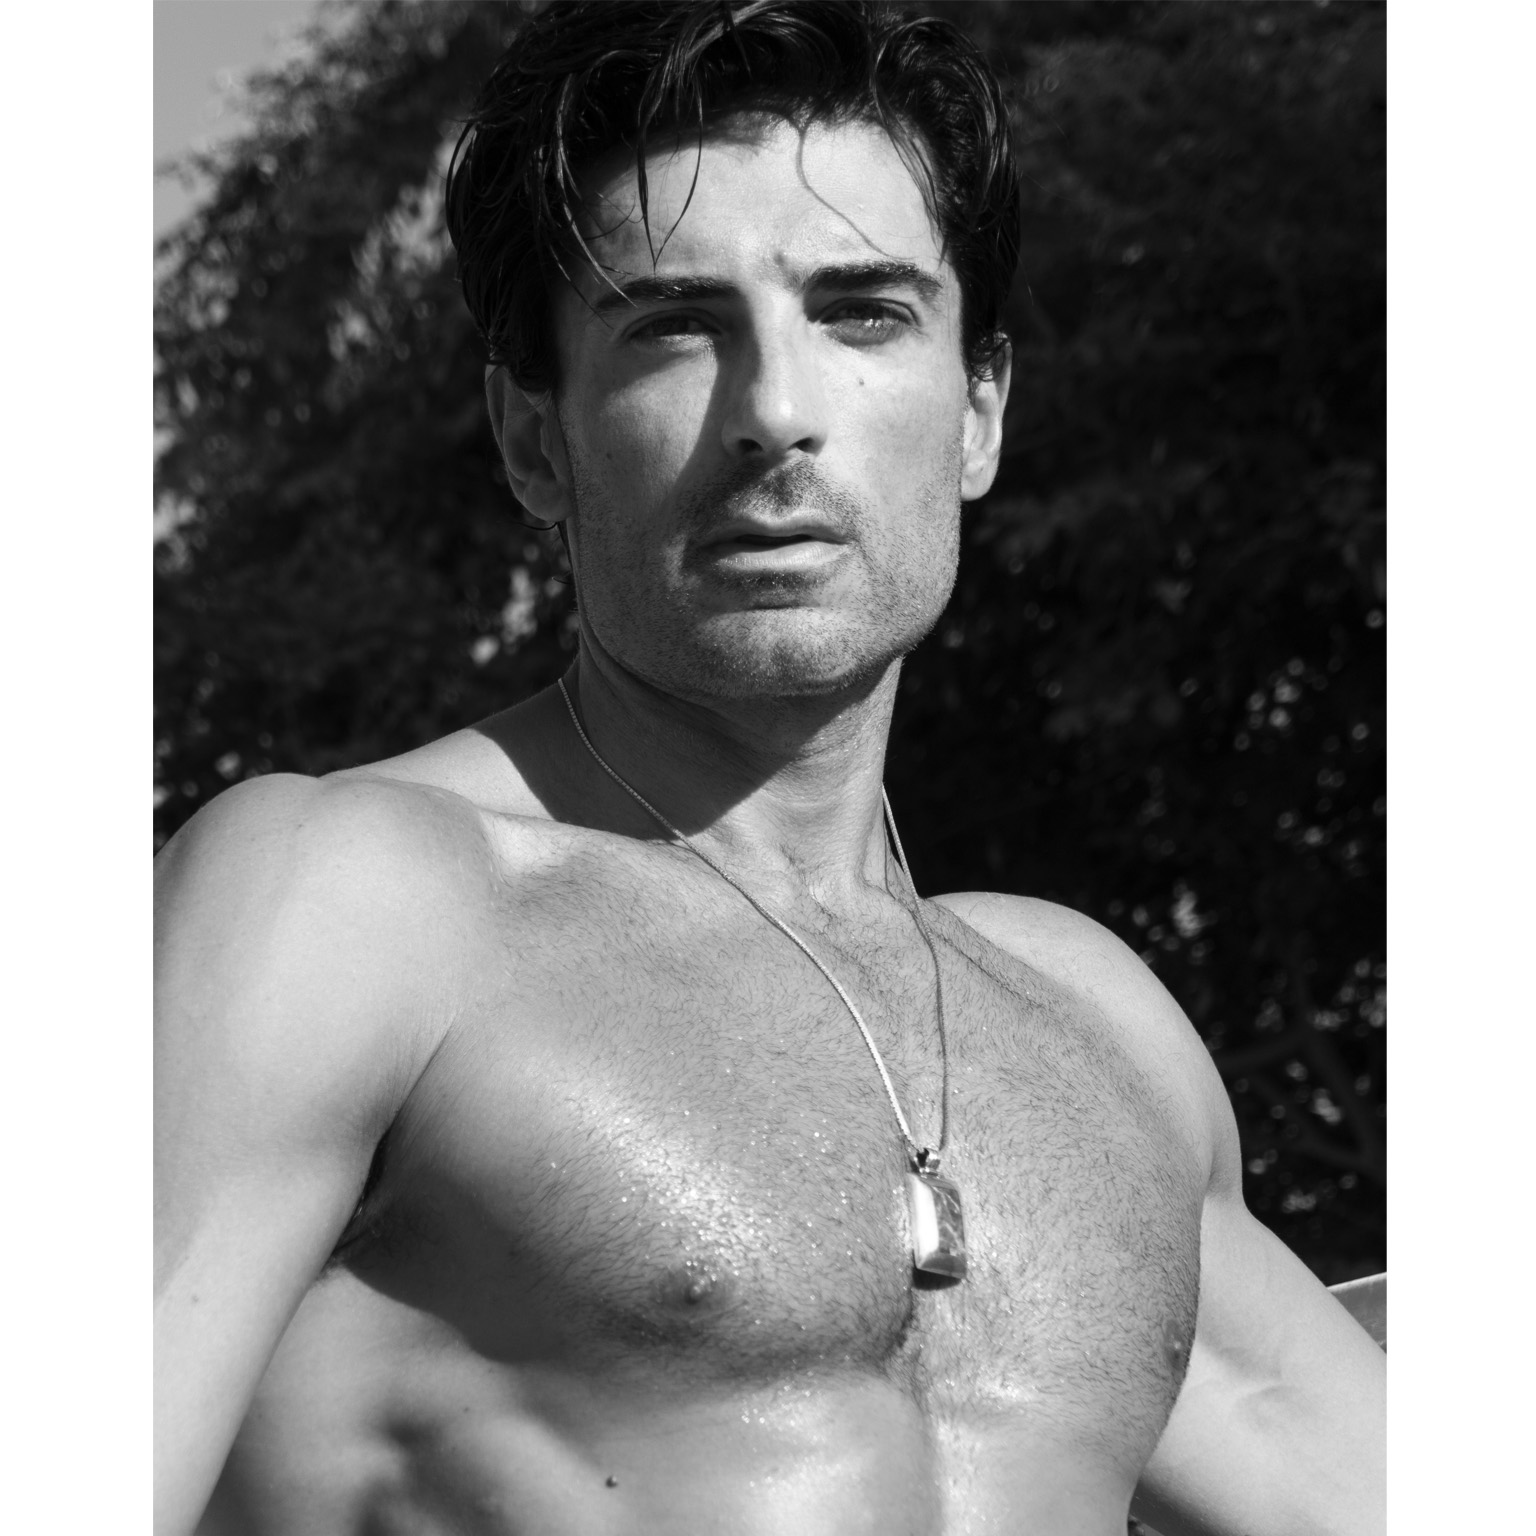 Toronto-Fitness-Model-Agency-Fitness-Casual-Commercial-Simon-Lazzerini-Commercial-Model-Lifestyle